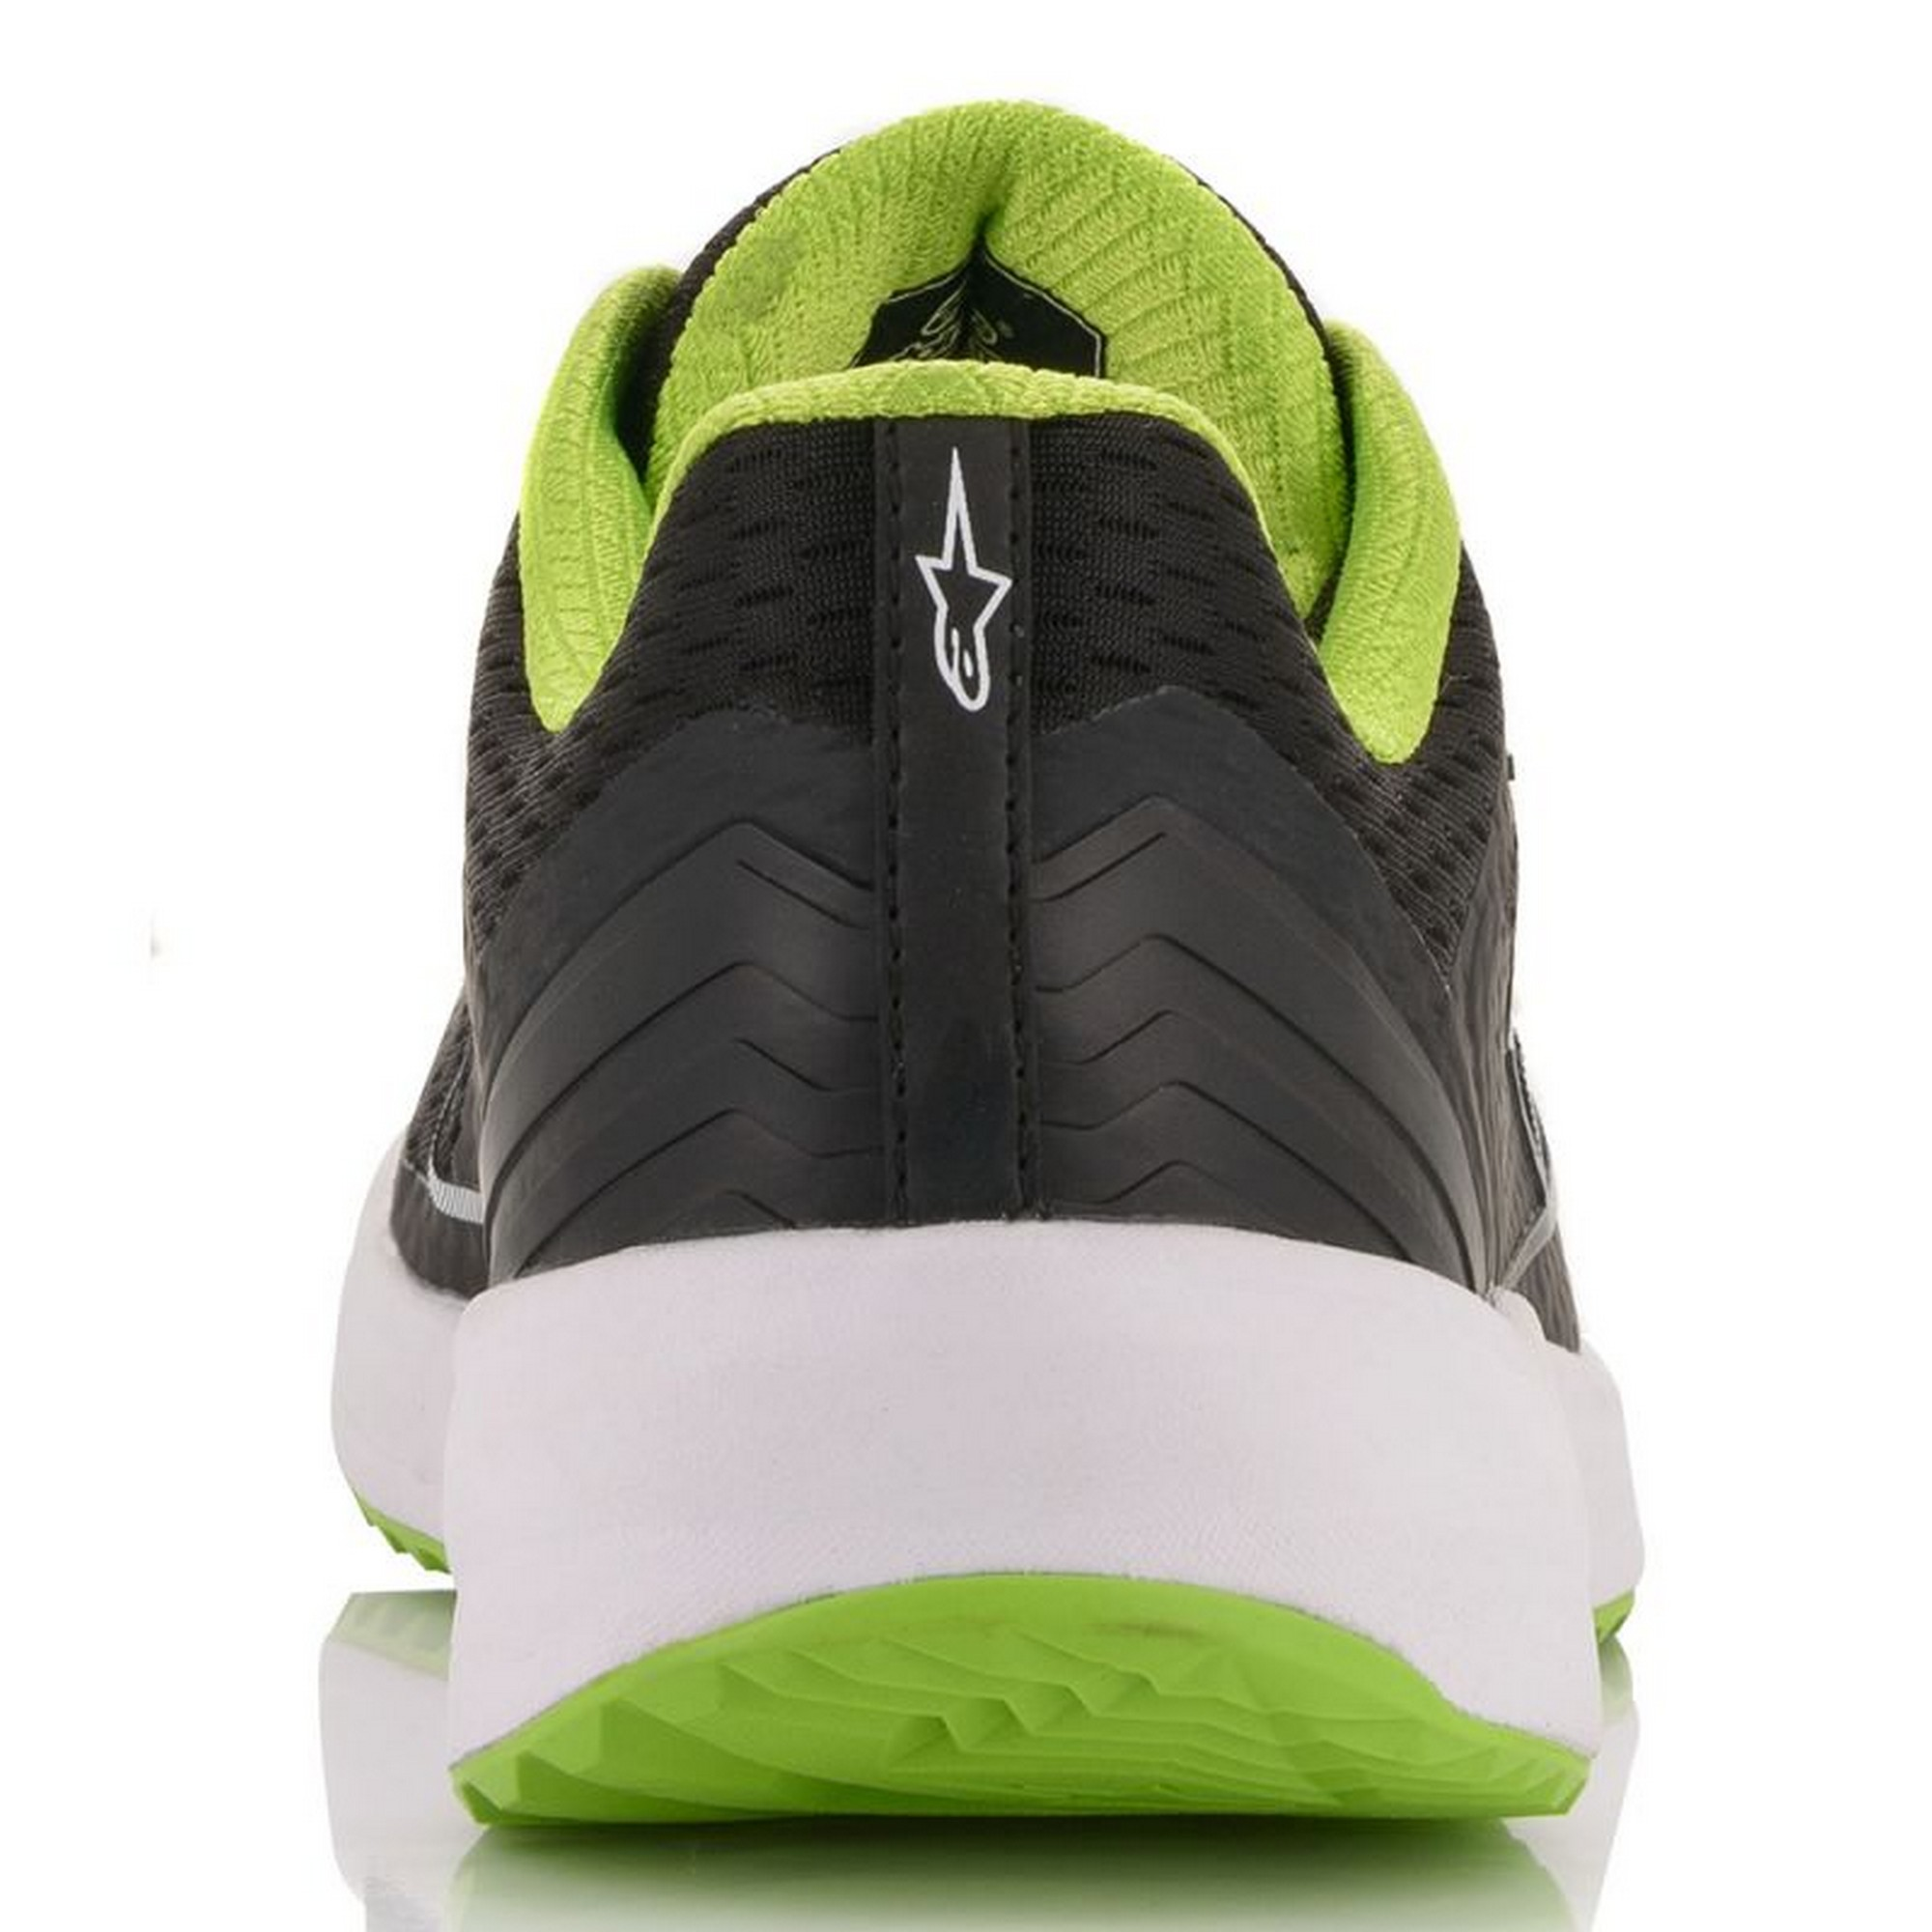 ALPINESTARS META ROAD SHOES R//WT 8.5